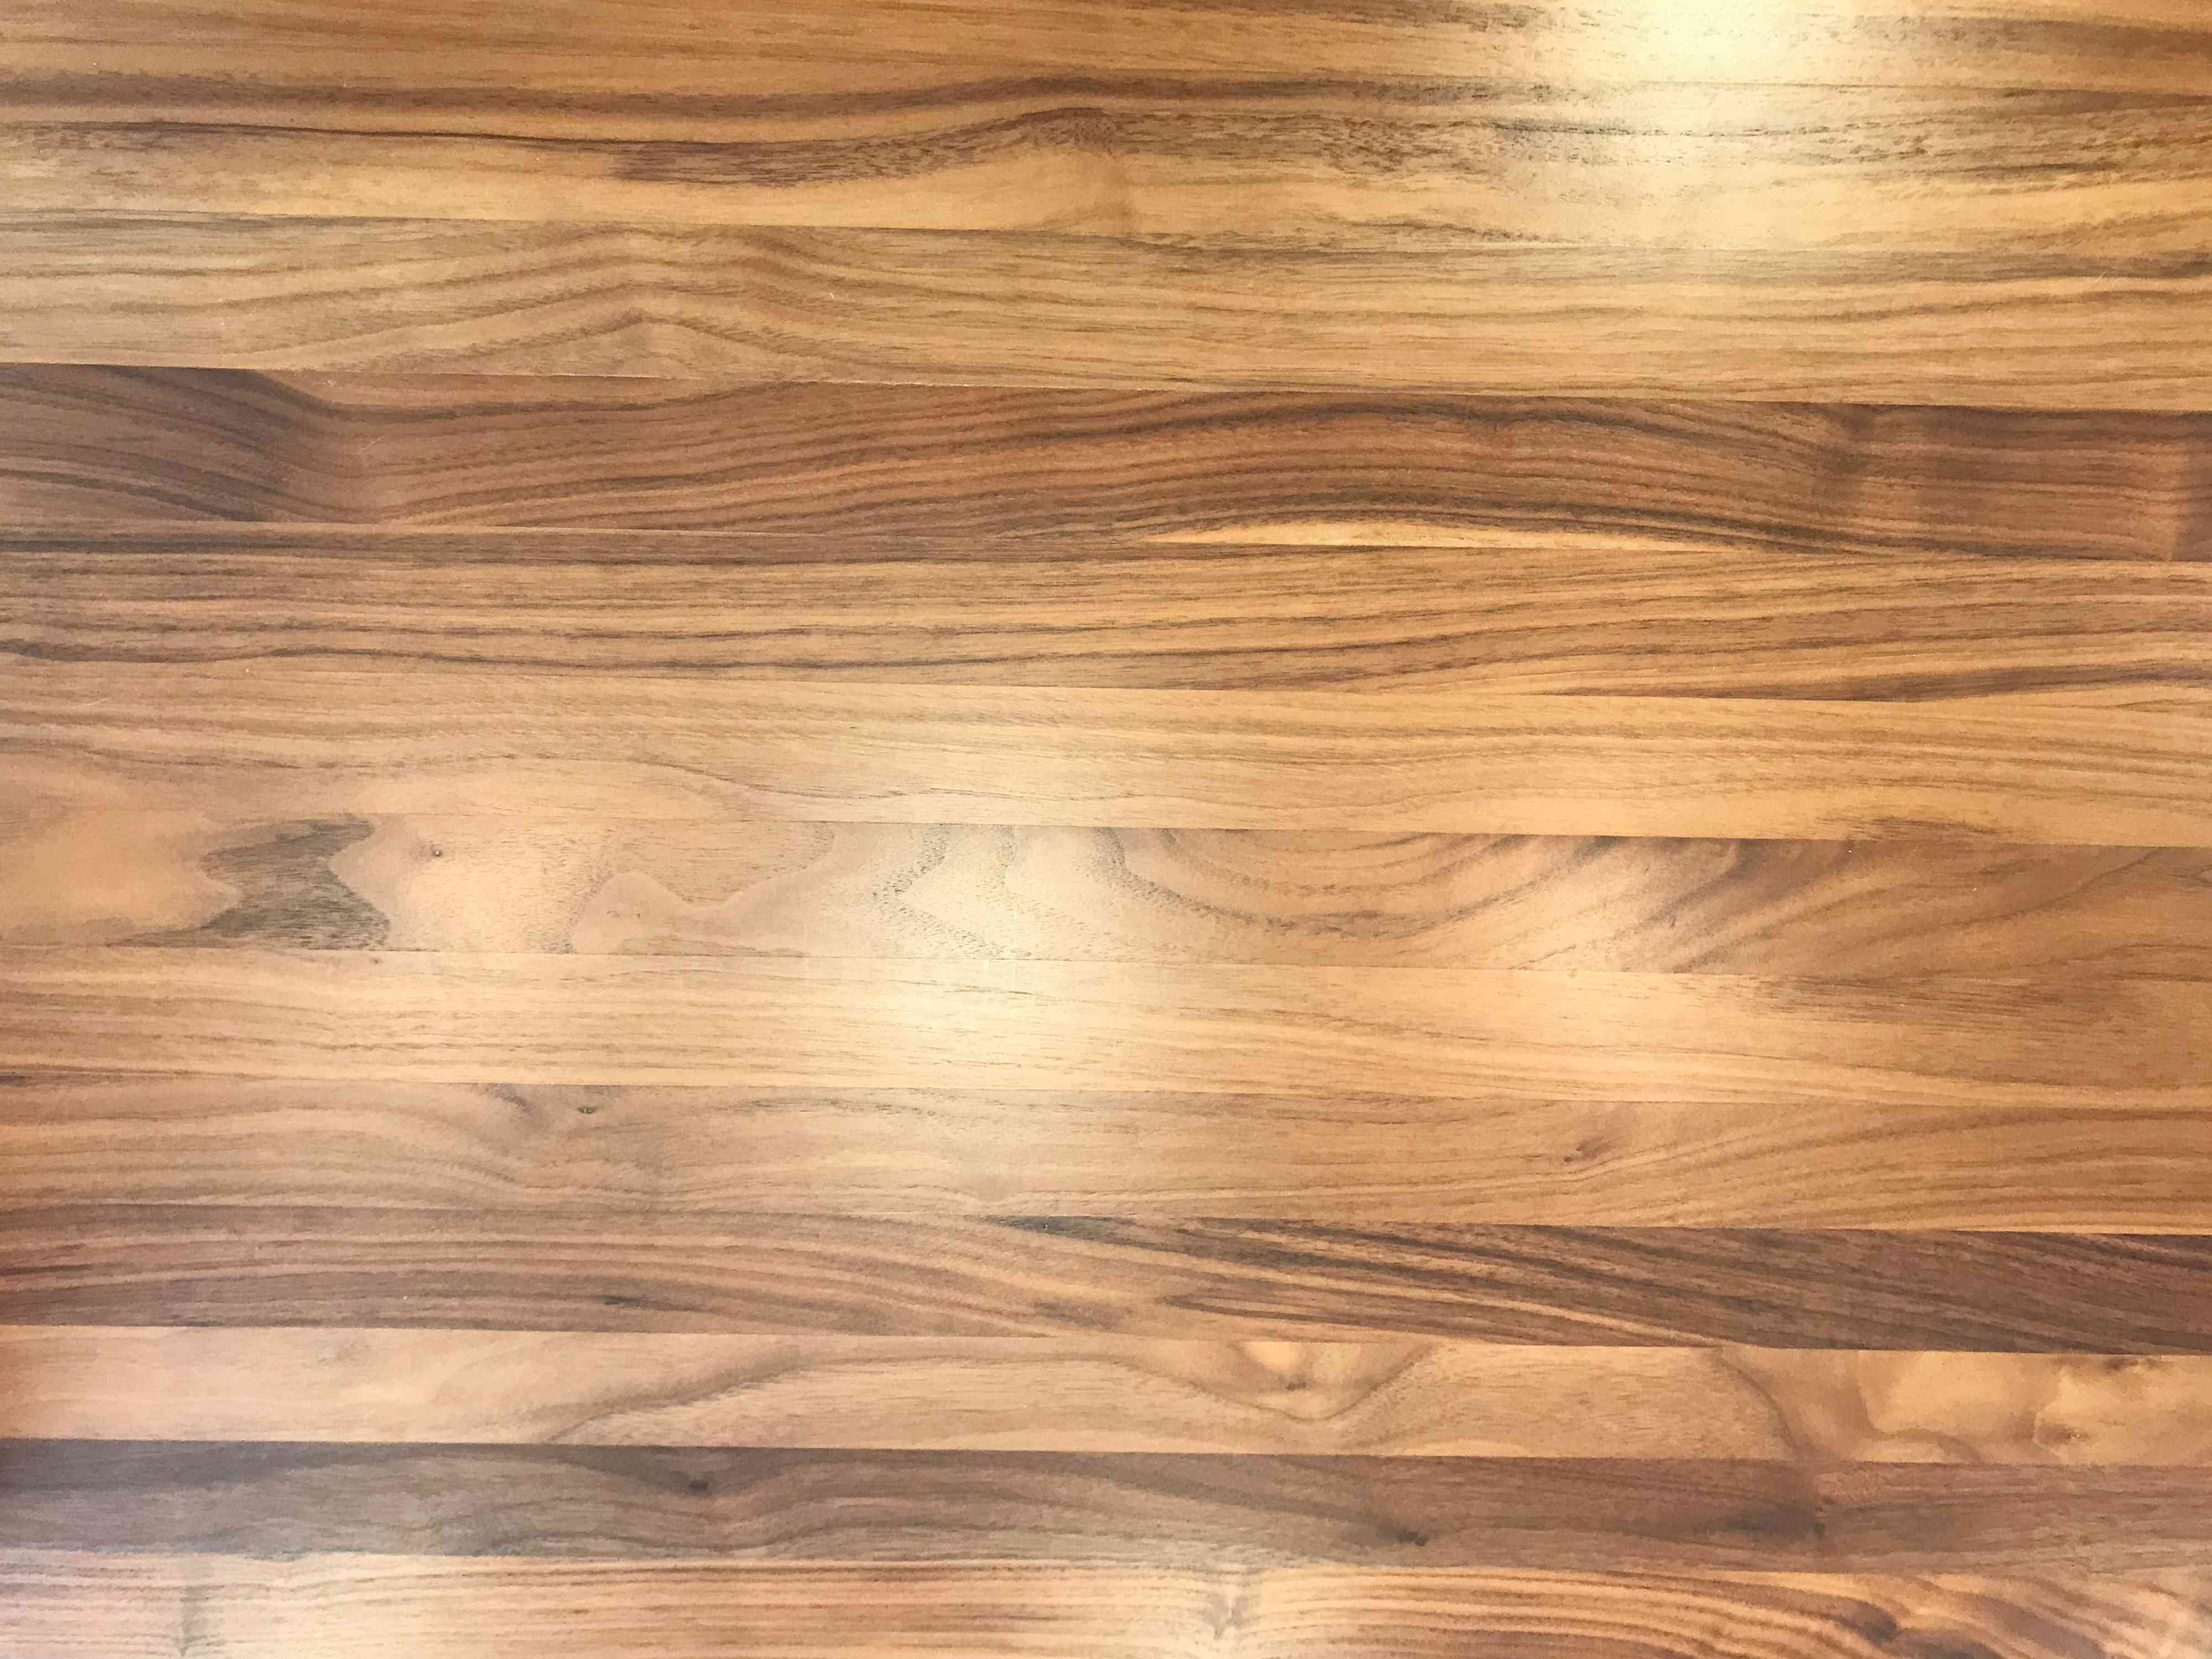 Butcher Block Countertop Stained and Sealed